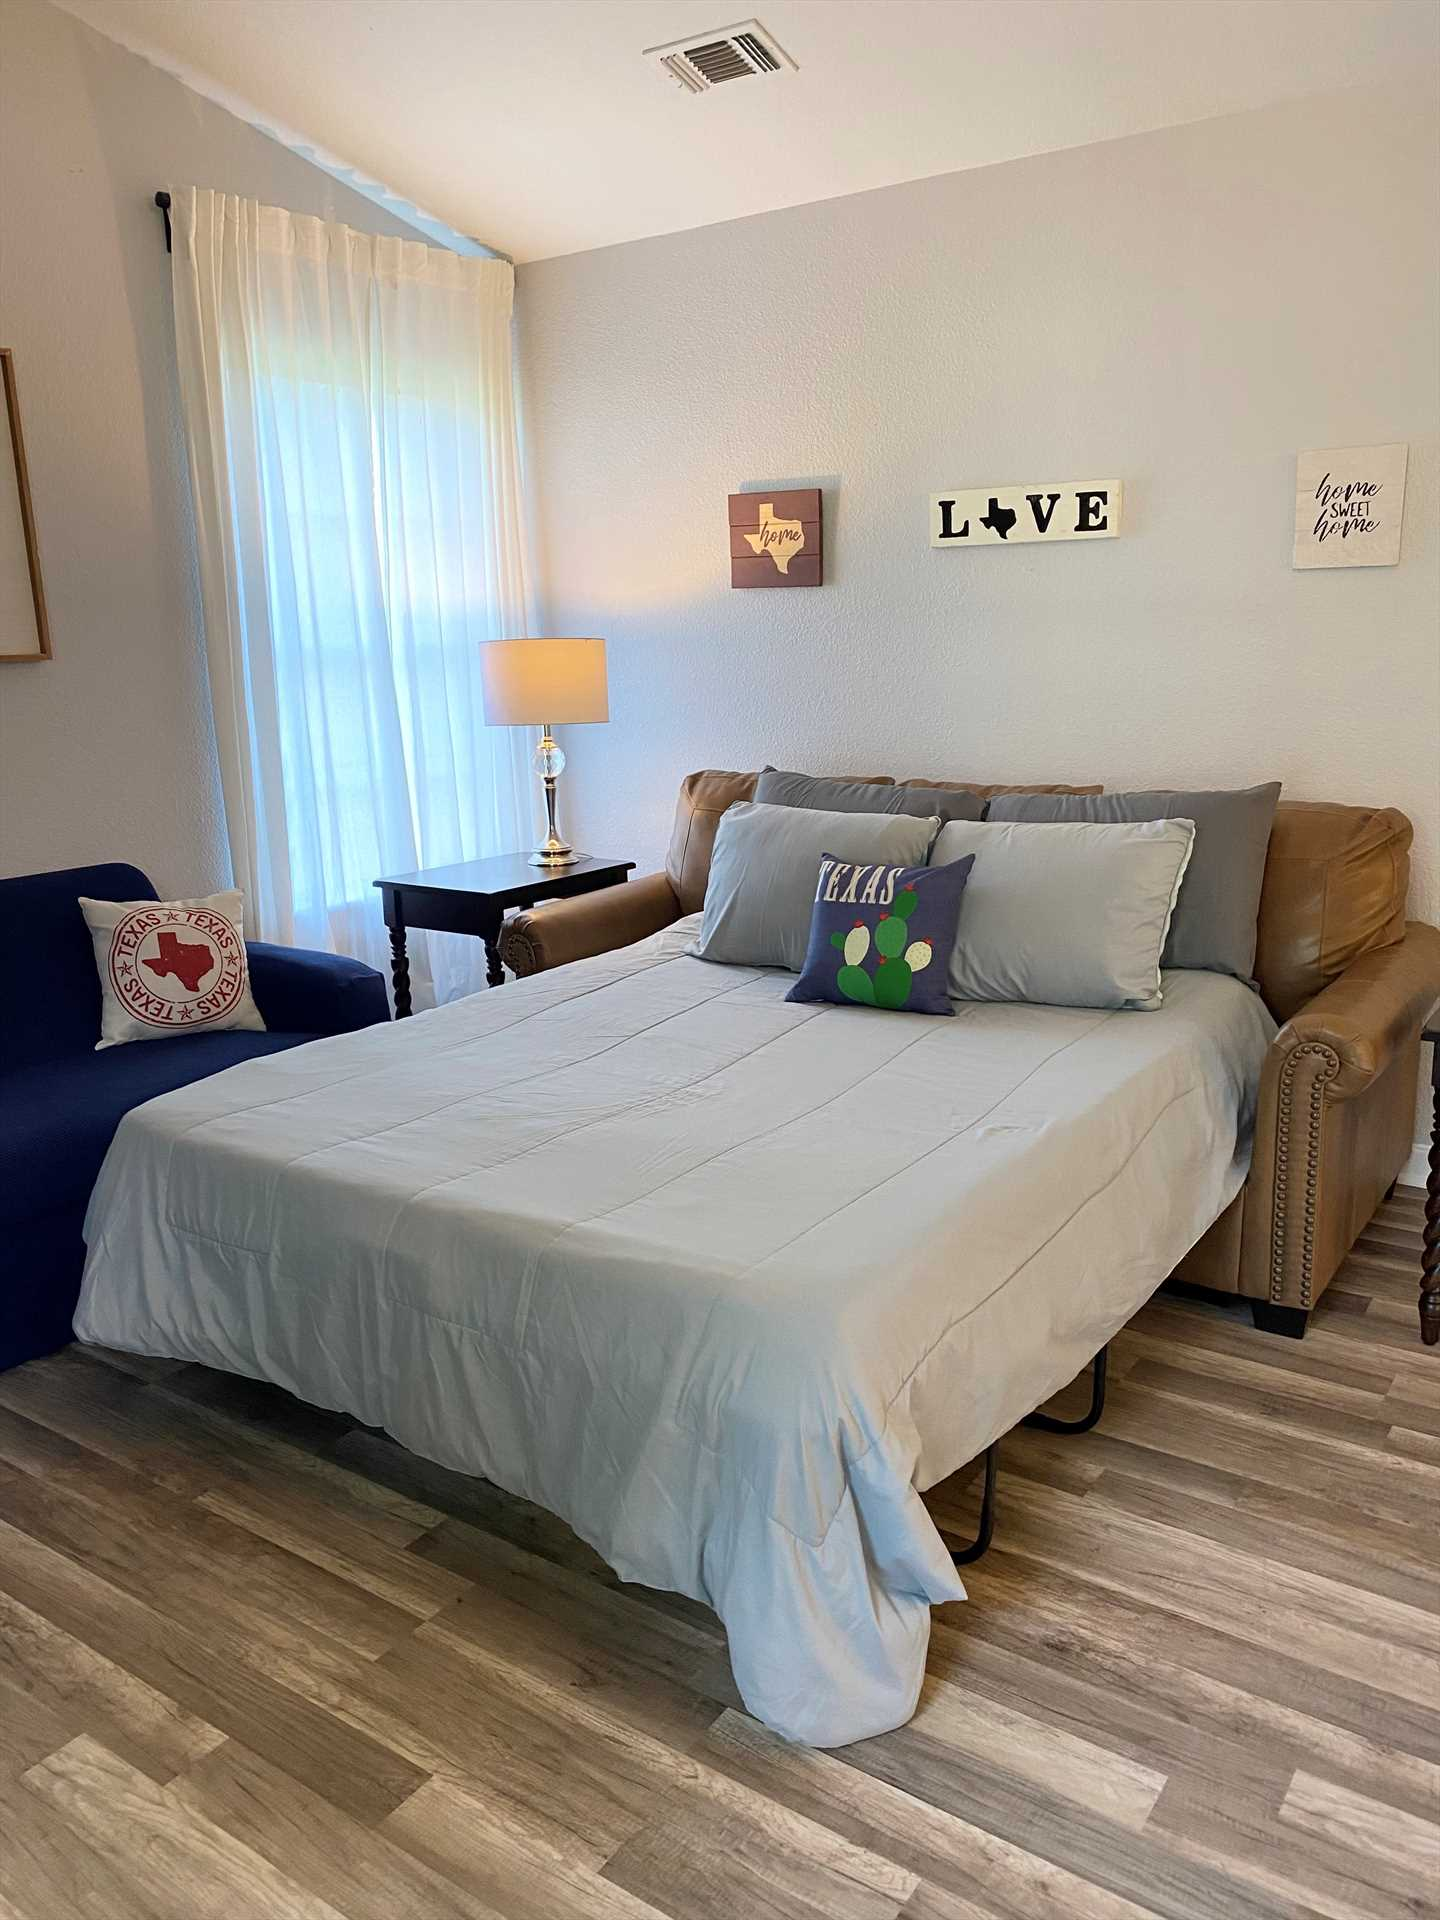 Two more guests can sleep in comfort on the sleeper sofa! All in all, there's plush sleeping accommodations for up to ten guests here.